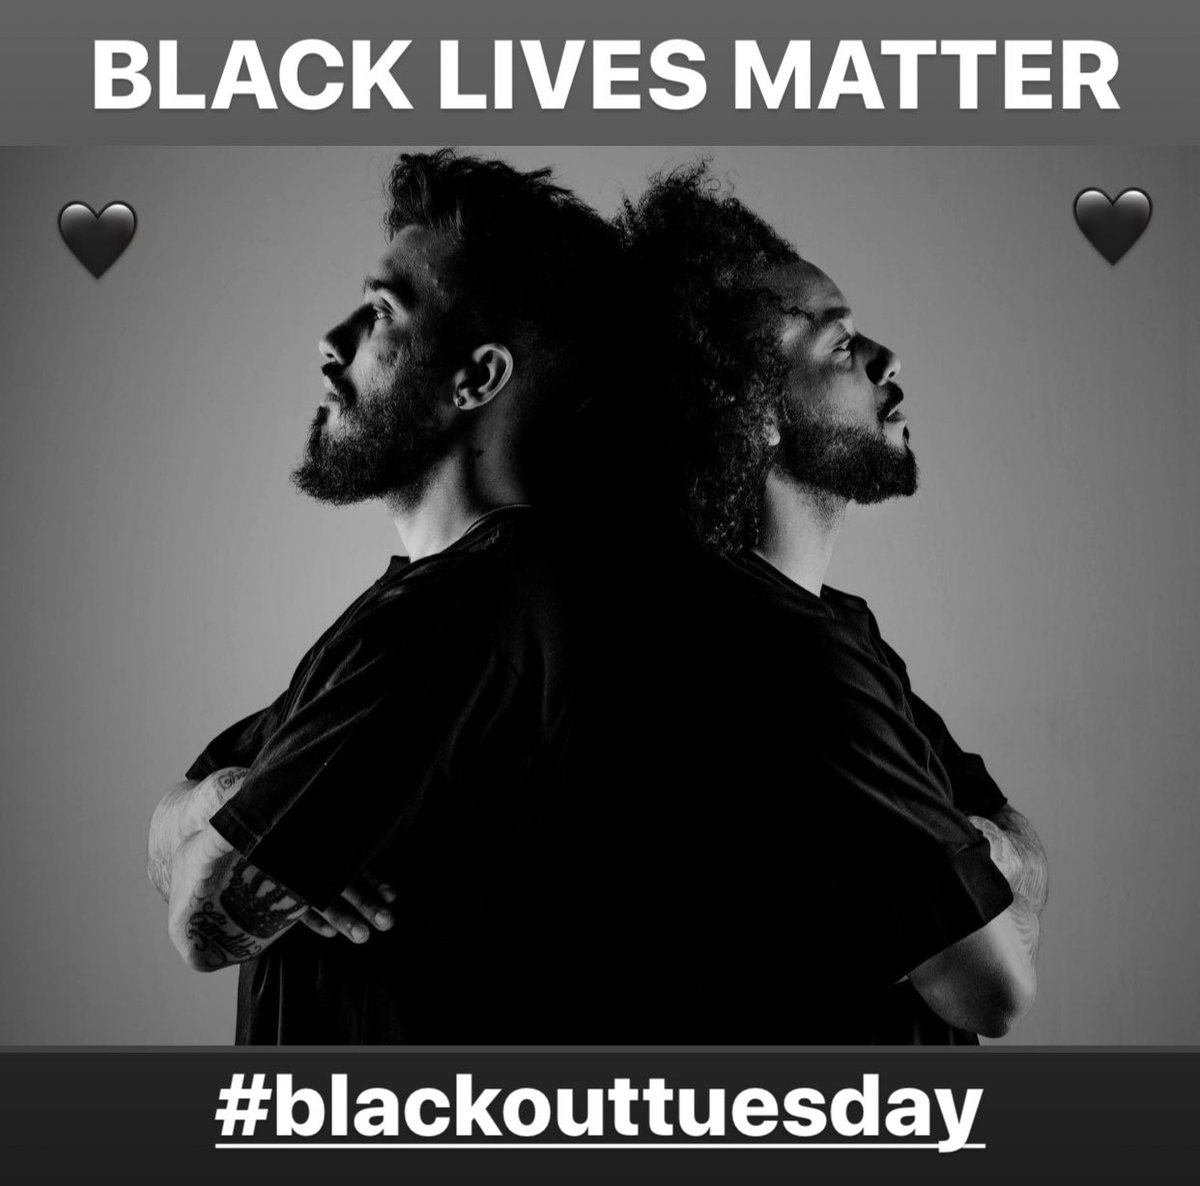 BLACK LIVES MATTER 🖤🖤🖤  #blackouttuesday